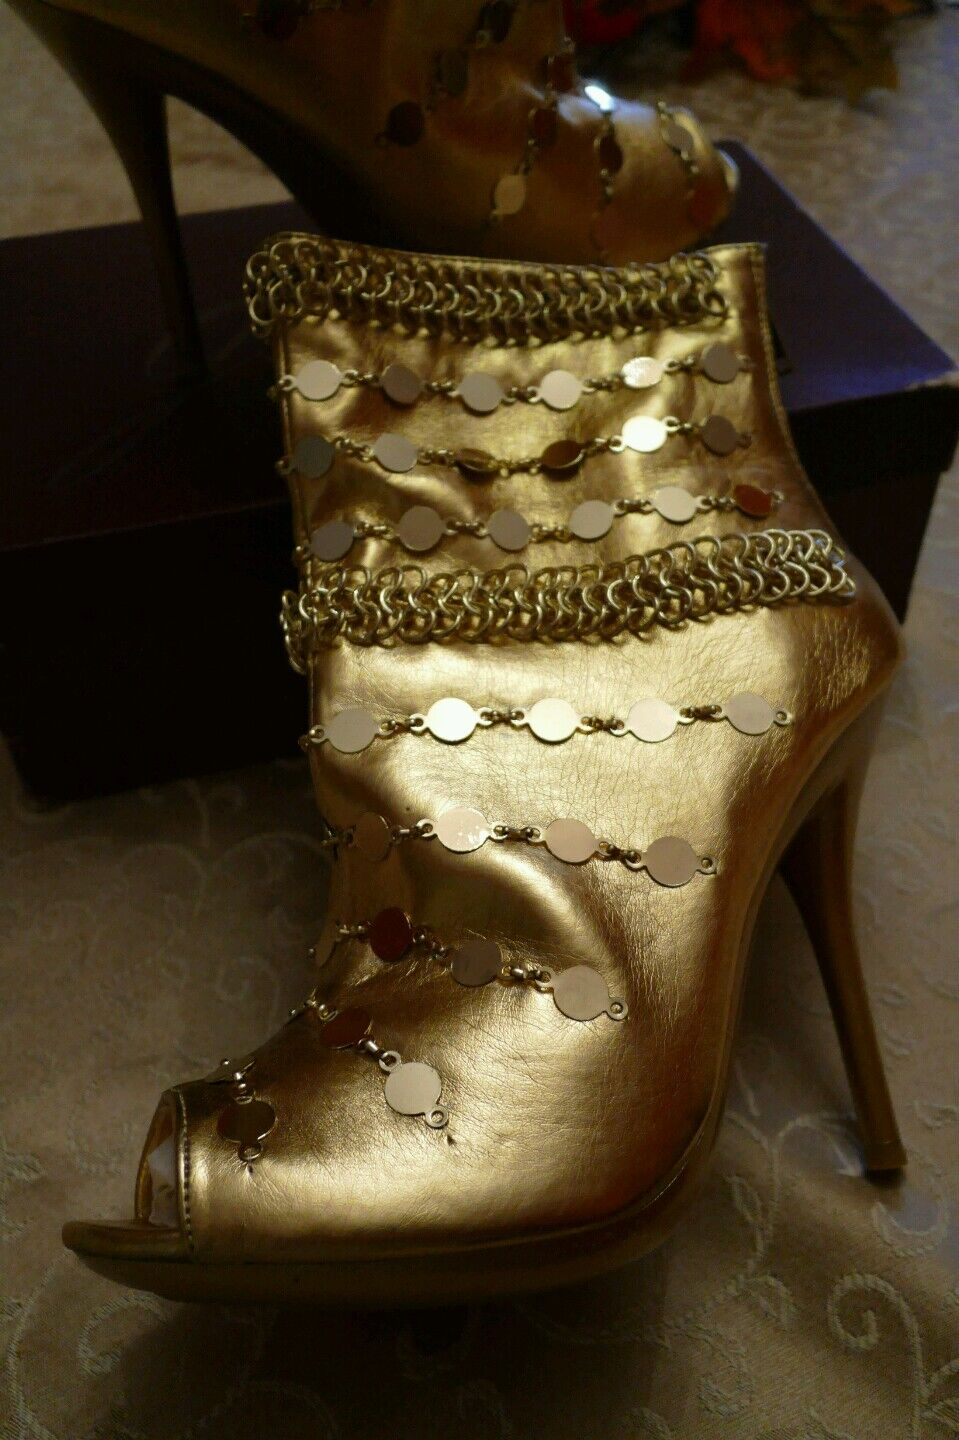 CNNWHOLESALE DEAL,,,,,, gold  mid calf boots five pairs.size 6 1 2m TO 81 2